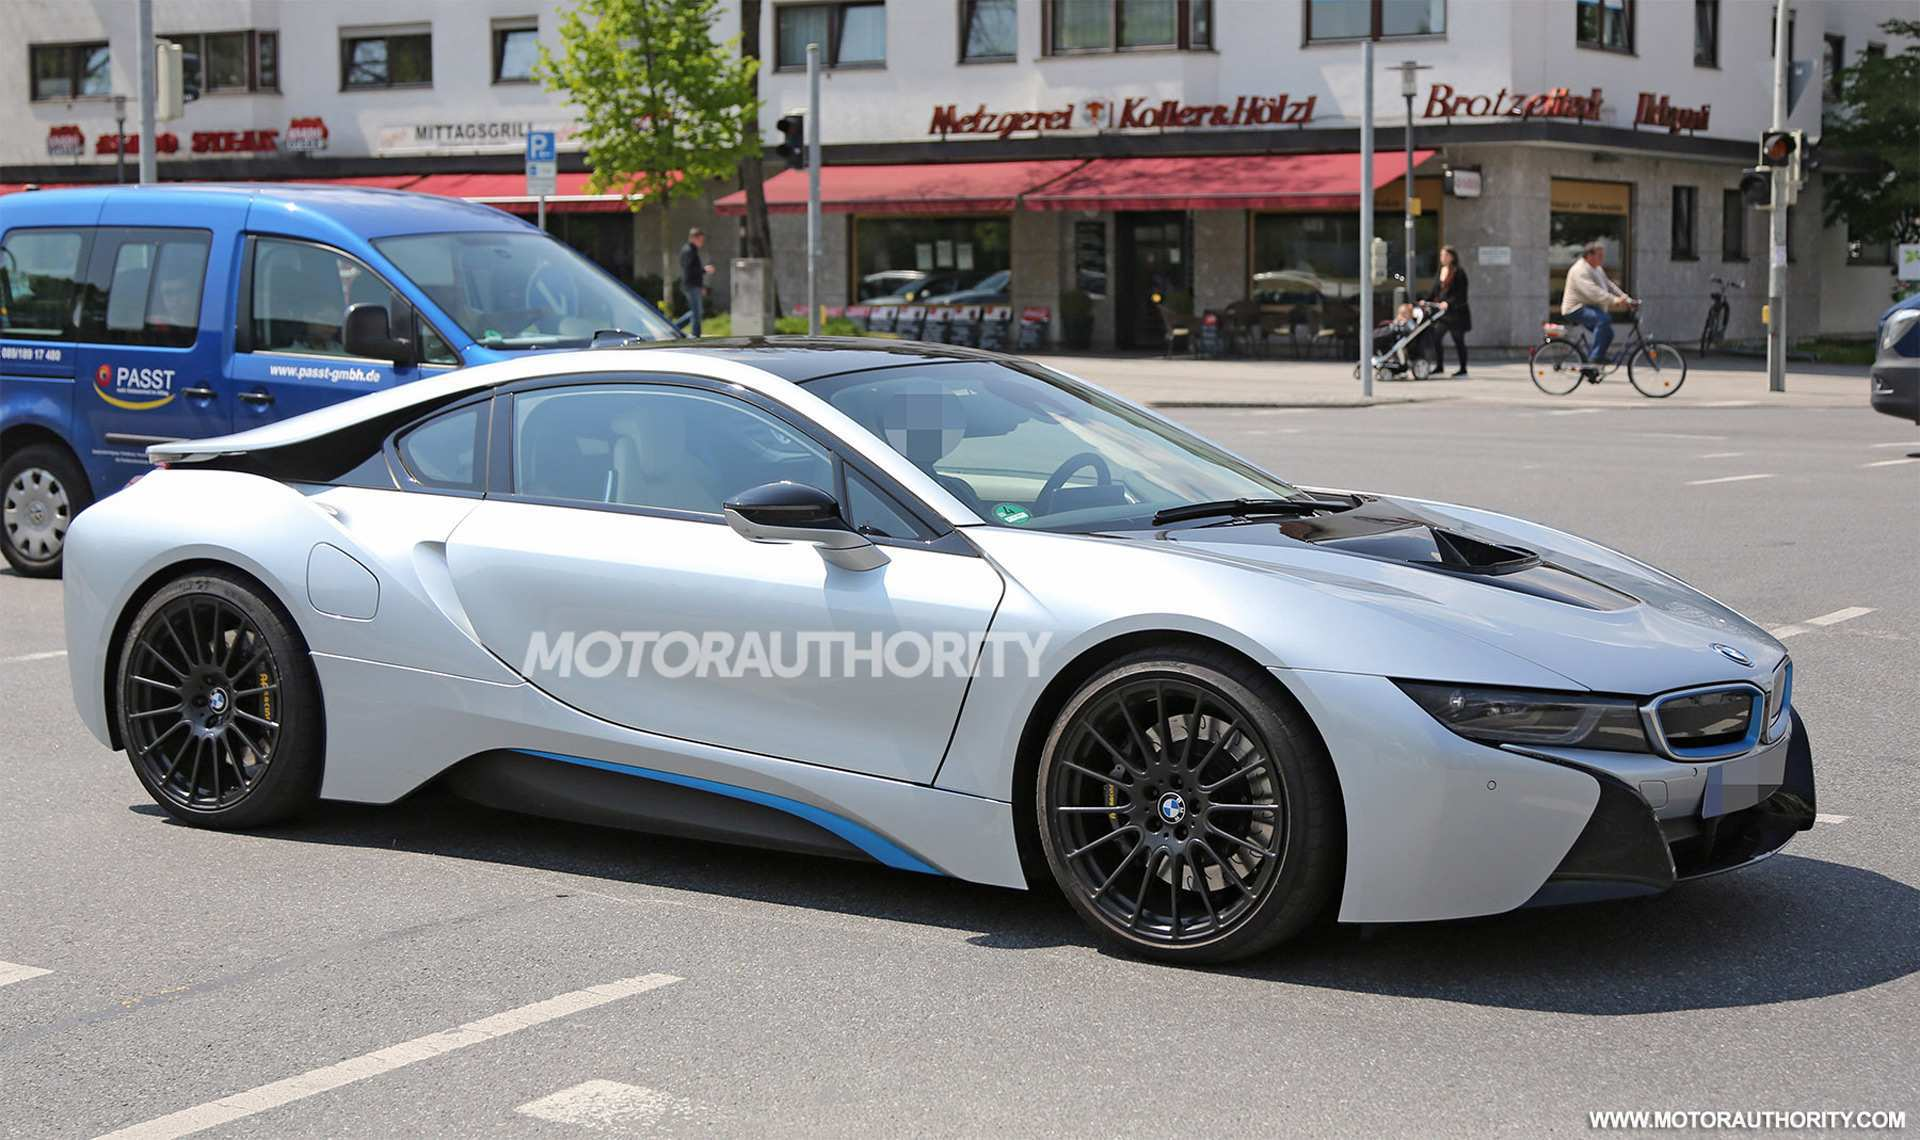 81 Great 2020 Bmw I8 Redesign and Concept with 2020 Bmw I8